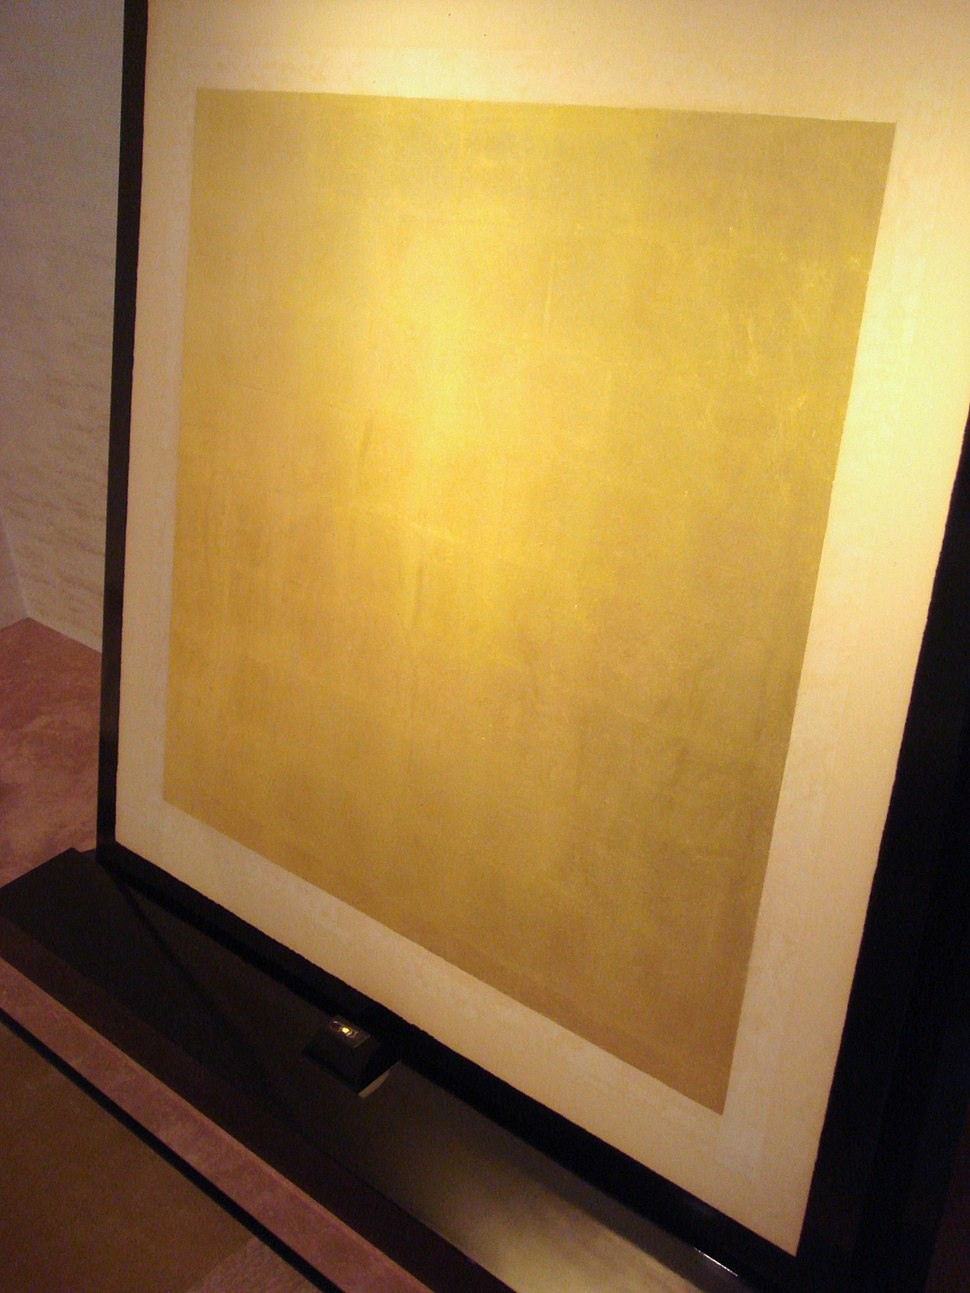 Small gold nugget 5mm dia and corresponding foil surface of half sq meter